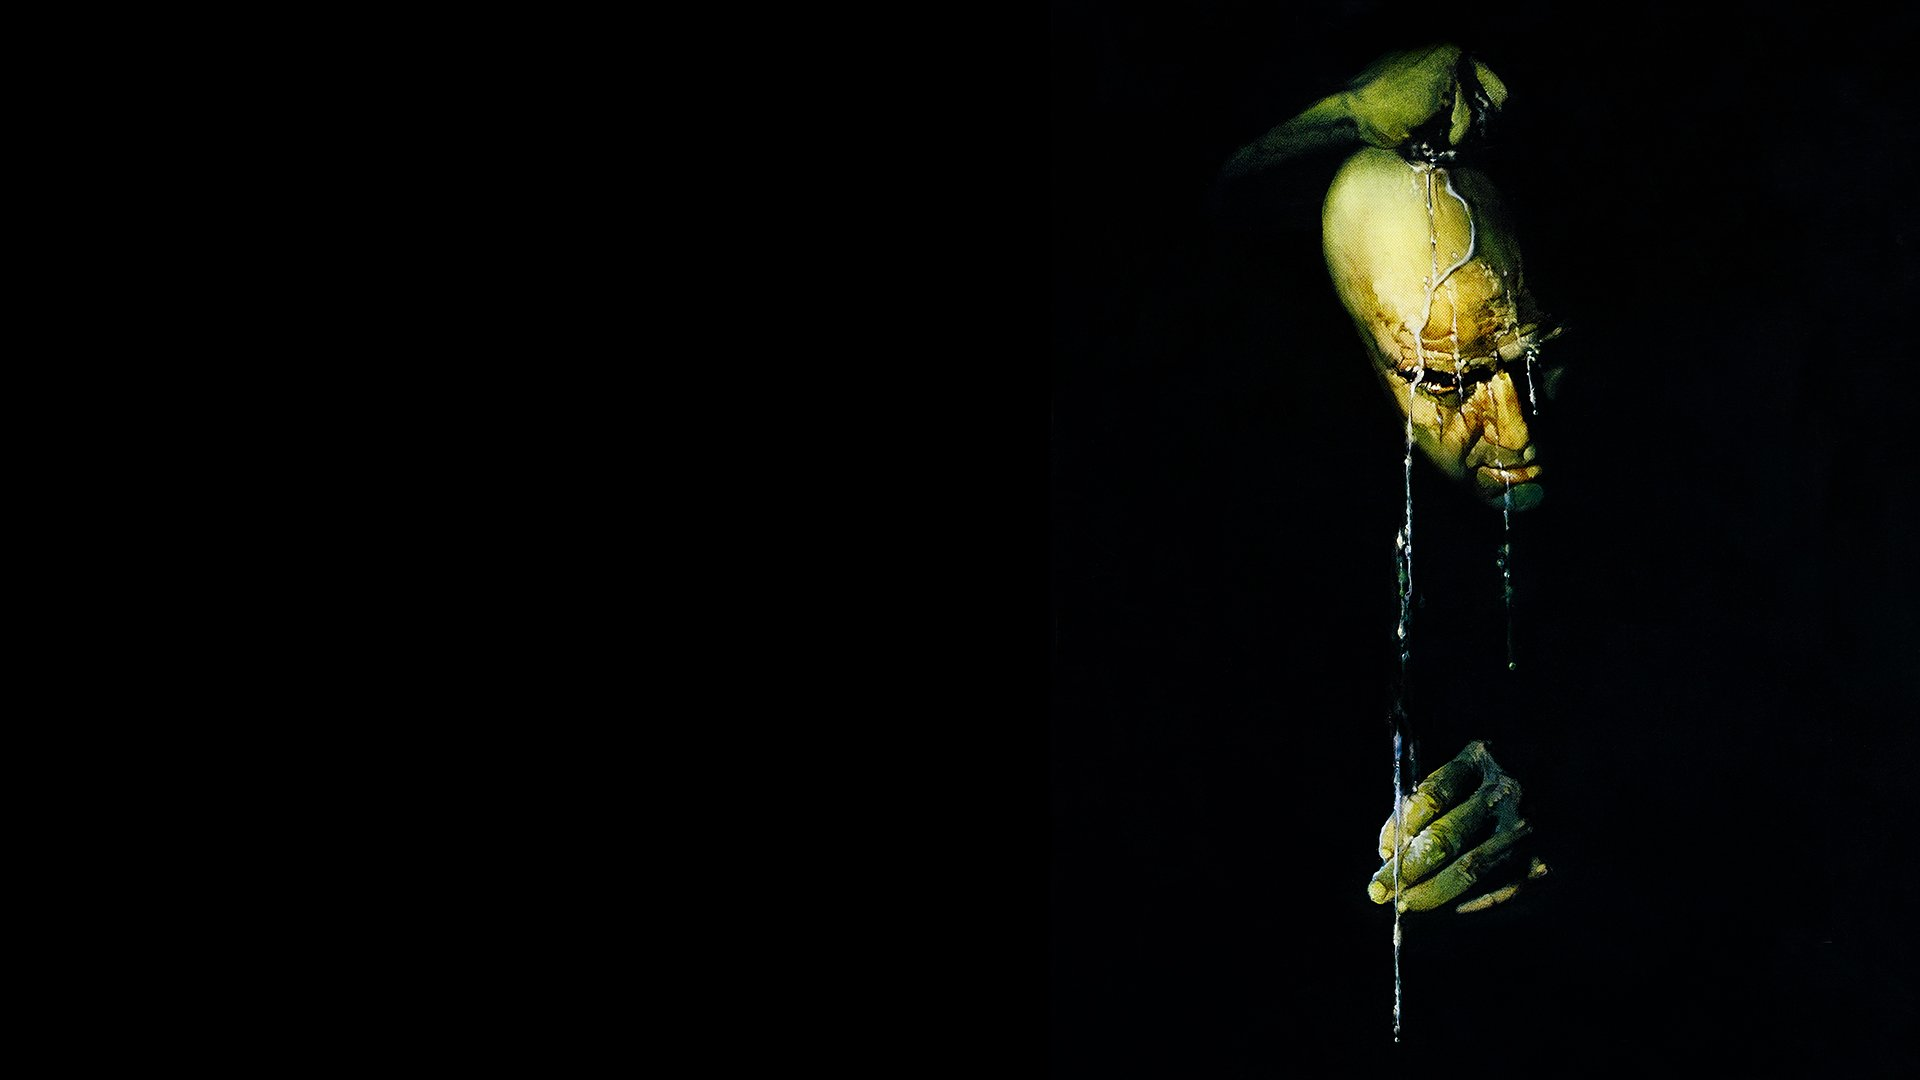 Apocalypse Now Computer Wallpapers Desktop Backgrounds 1920x1080